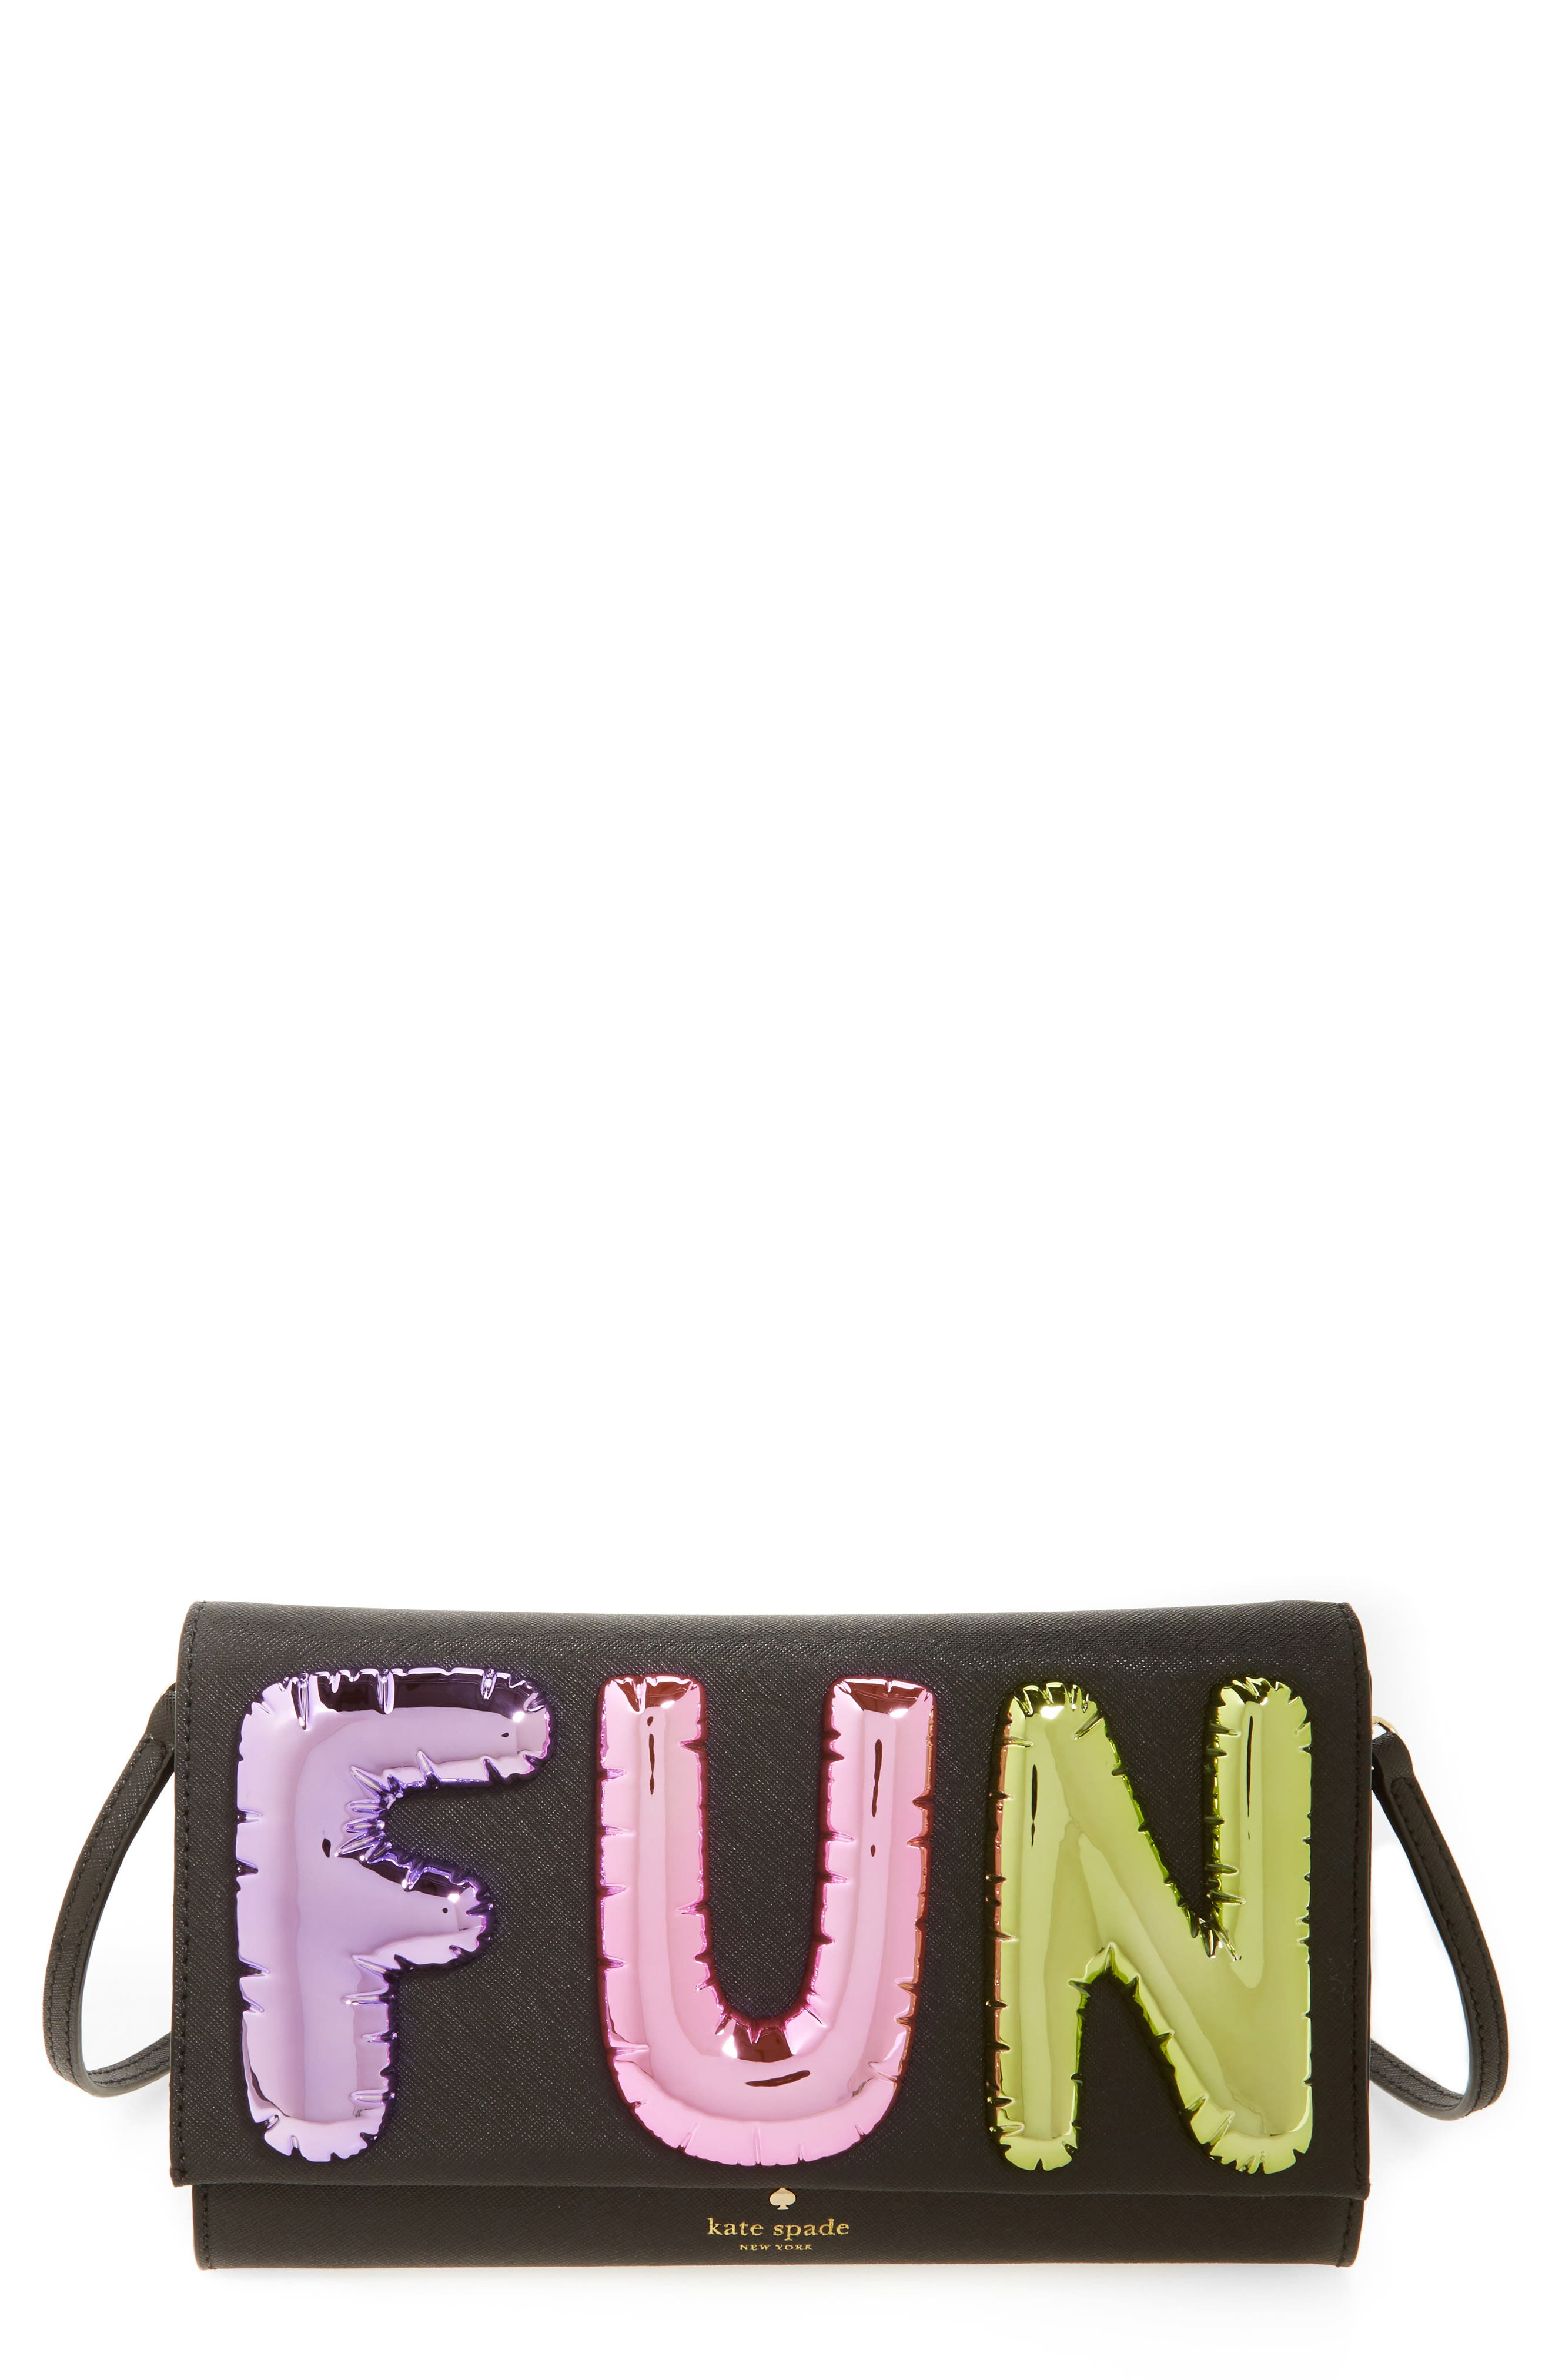 Main Image - kate spade new york whimsies fun balloon saffiano leather clutch